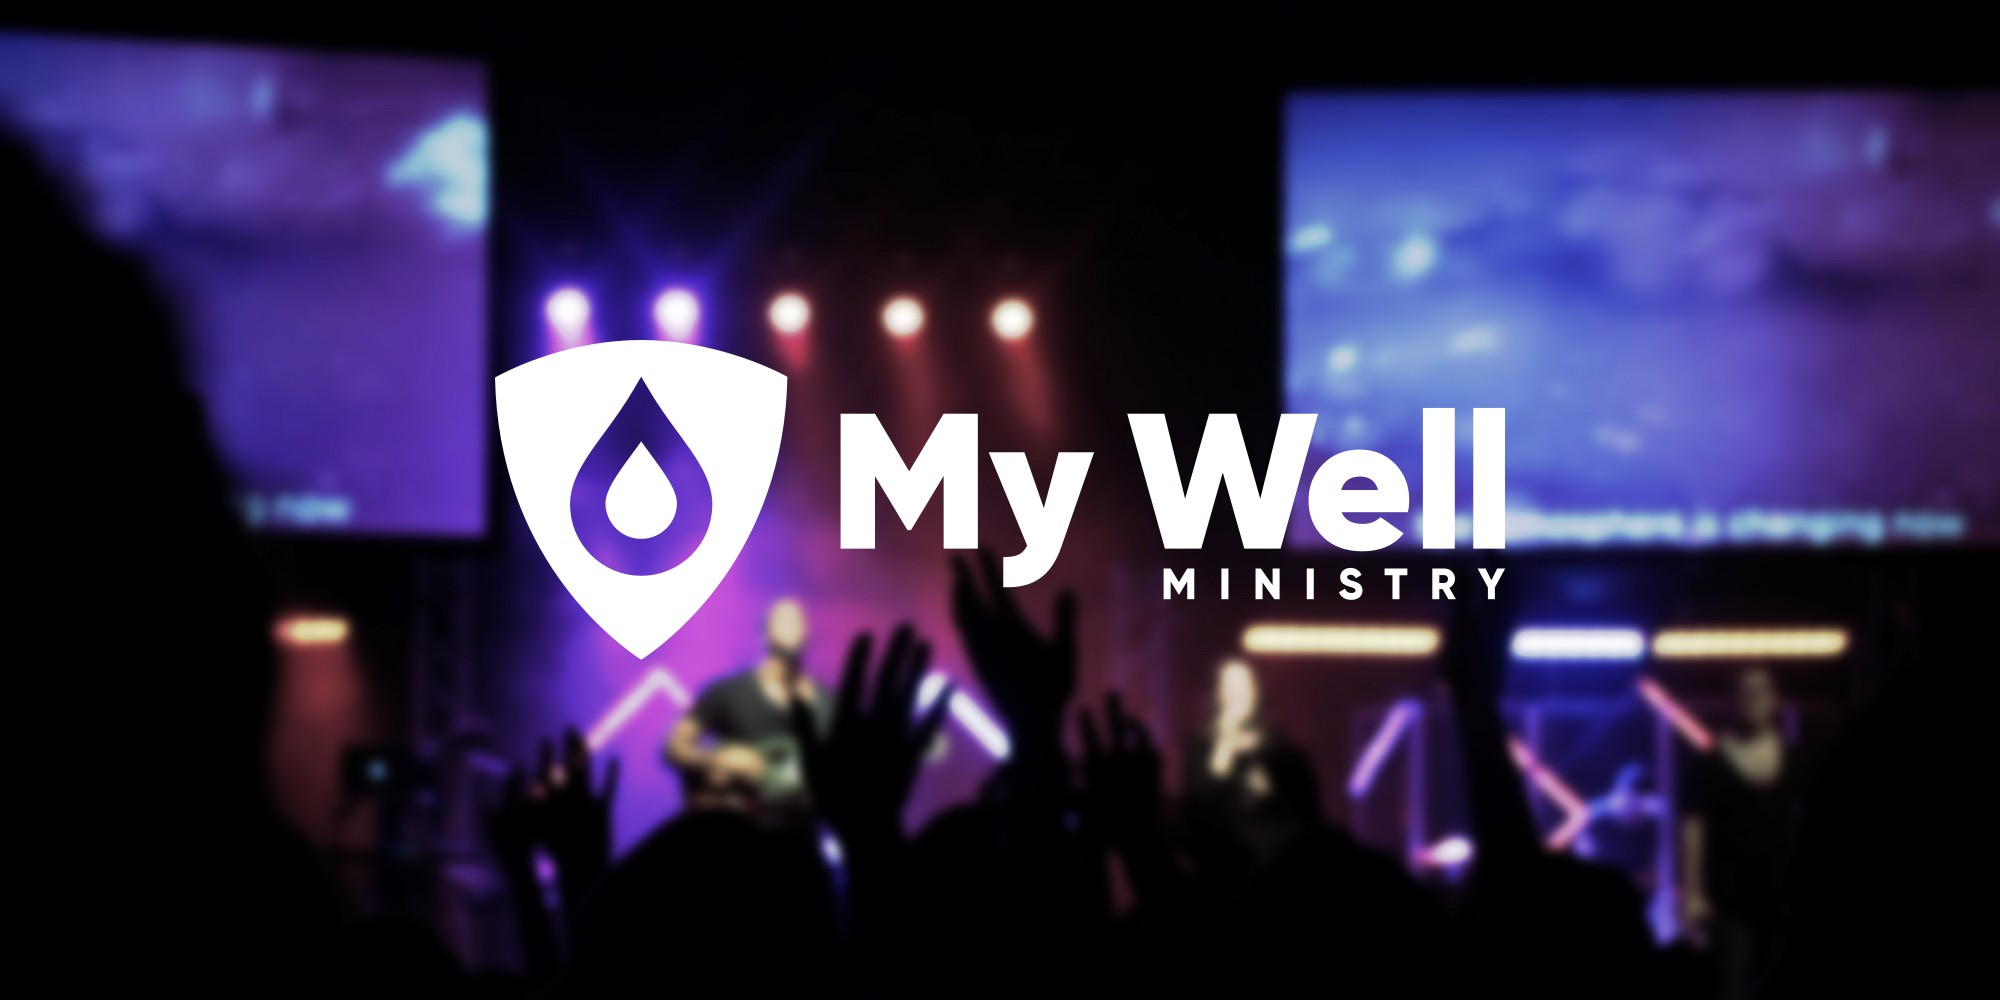 My Well Ministry New Brand Poster